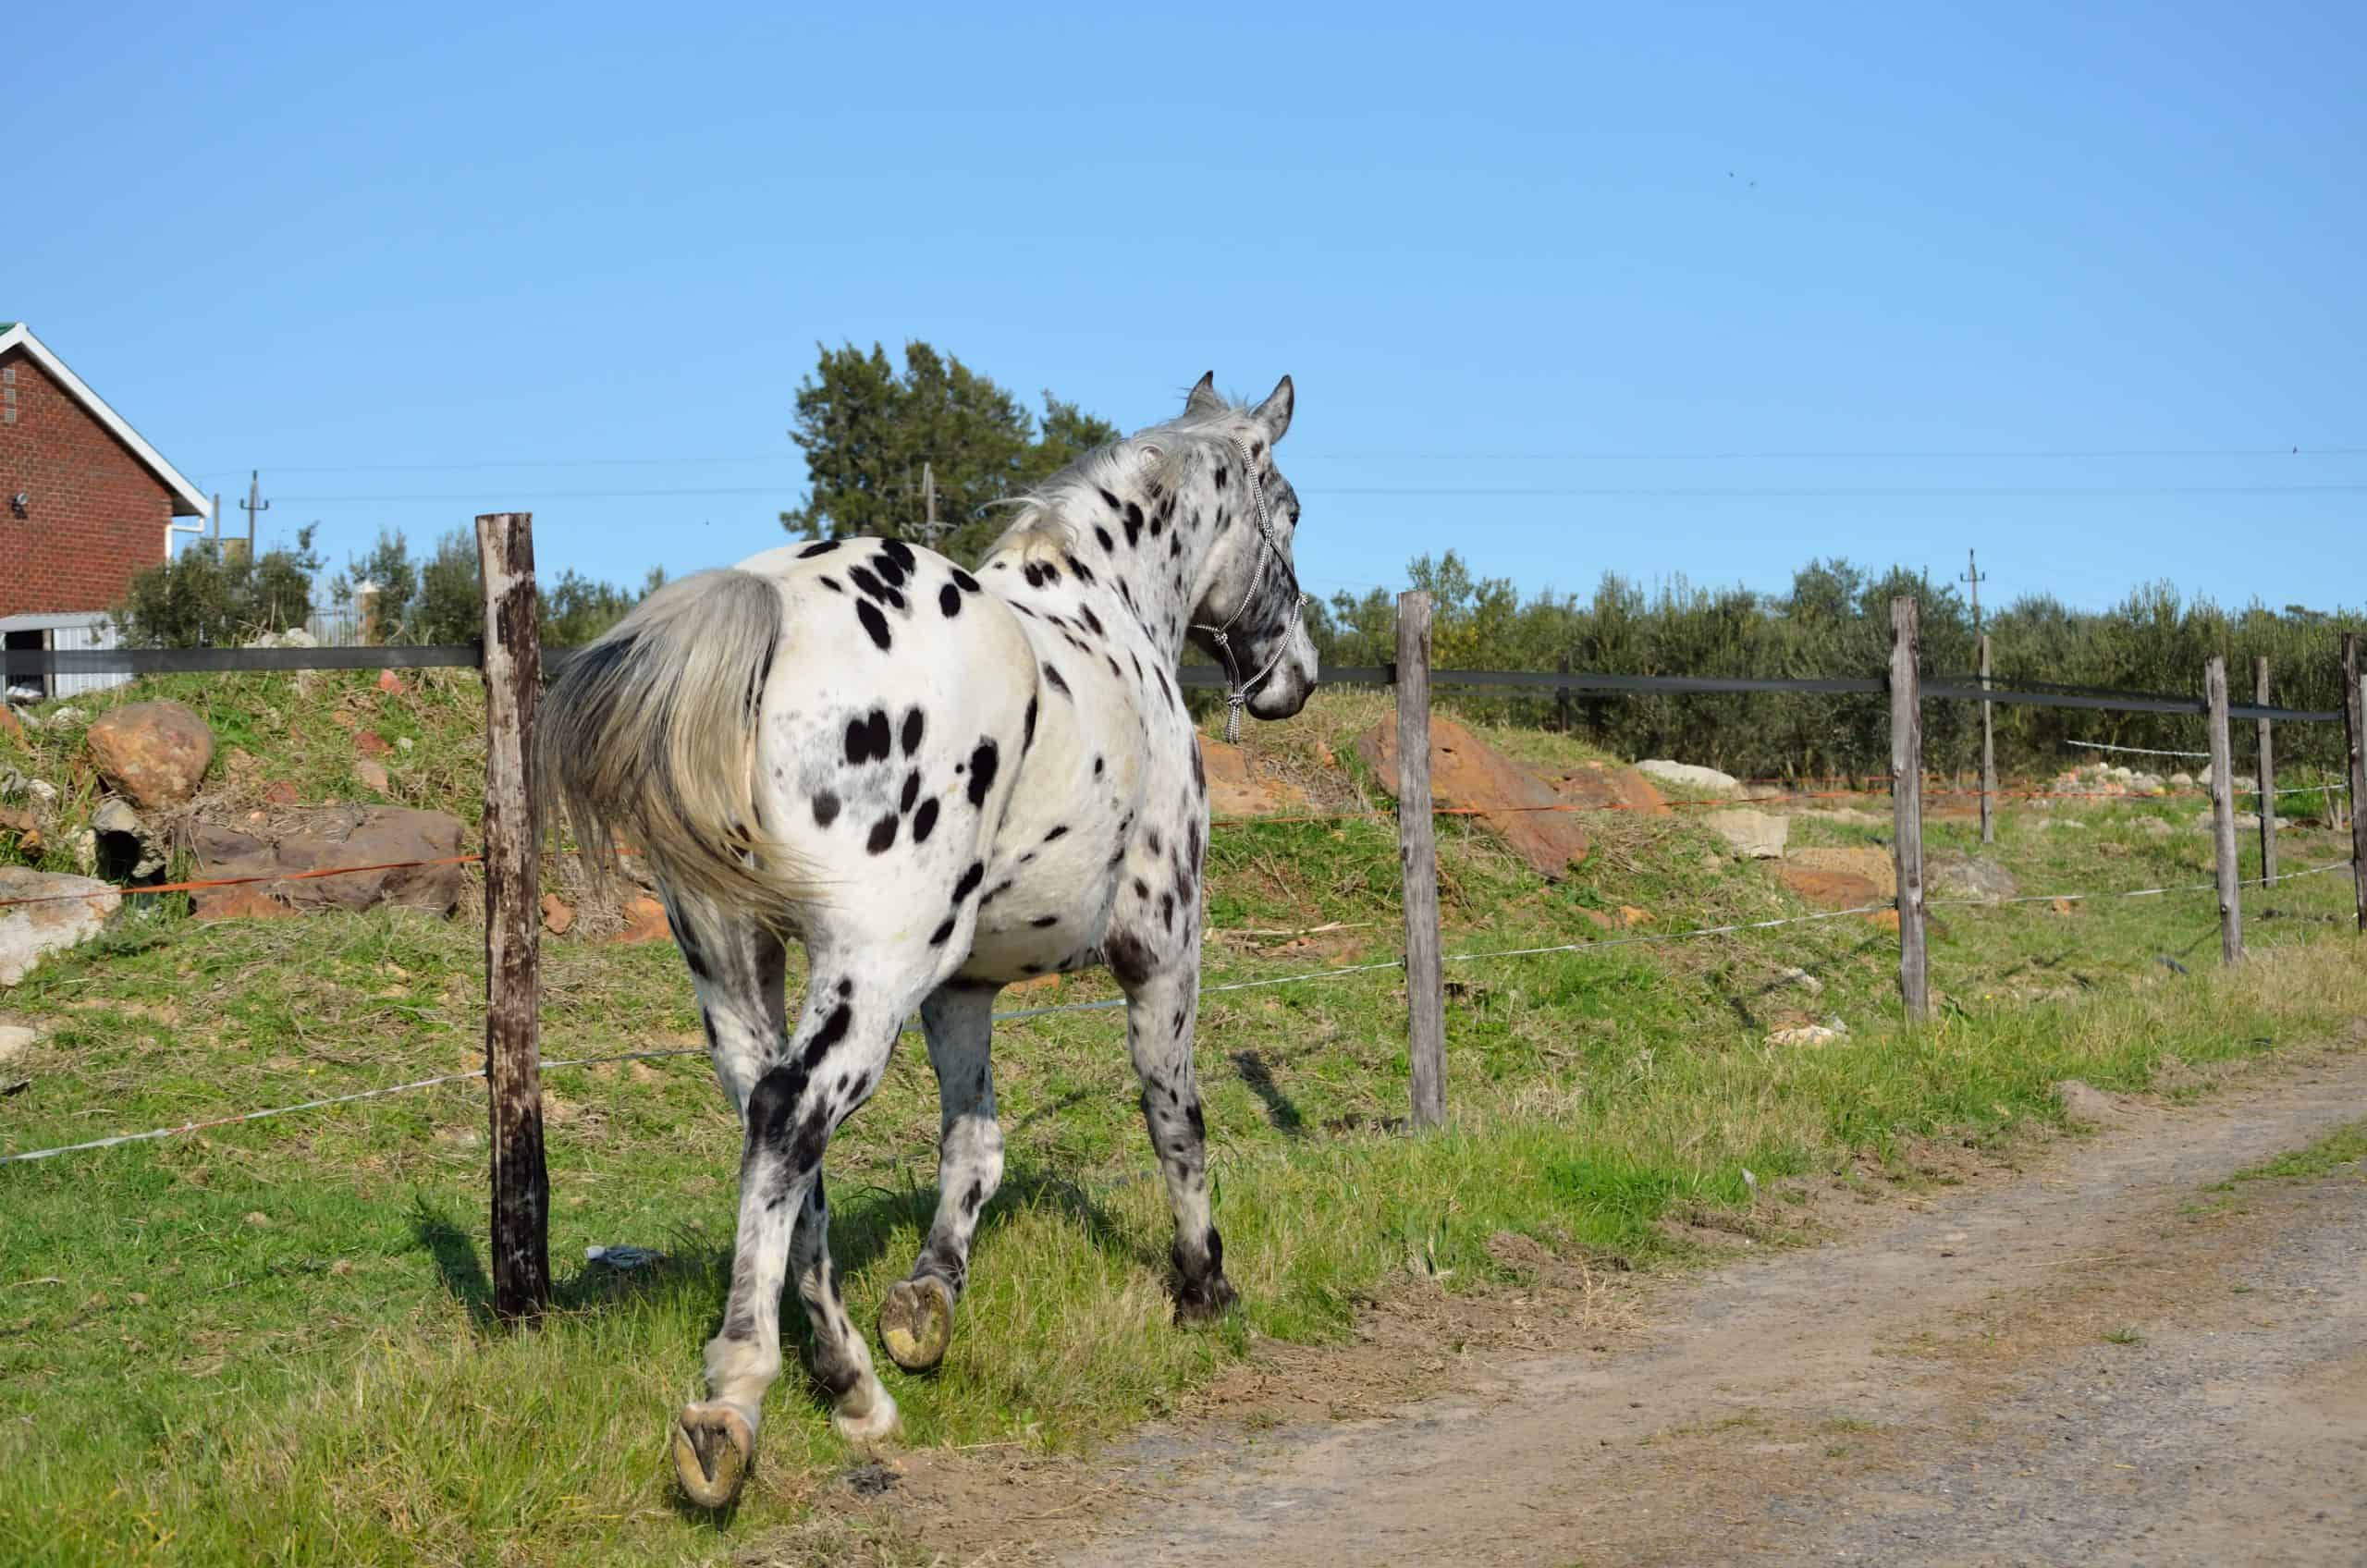 A appaloosa horse going along a farm road